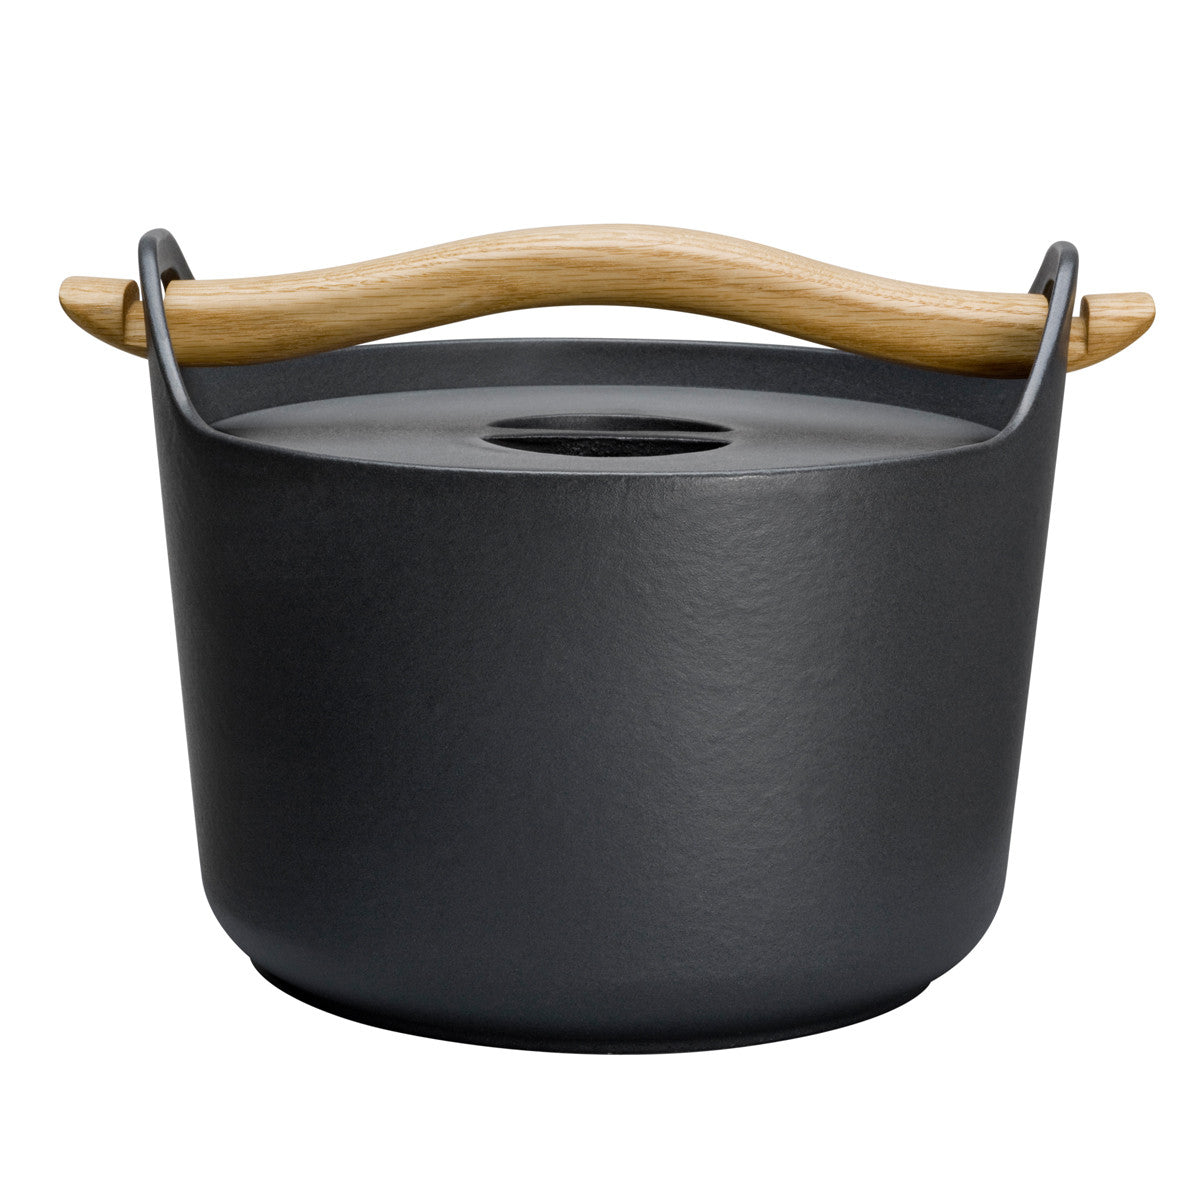 Sarpaneva Casserole with Wooden Handle 3L